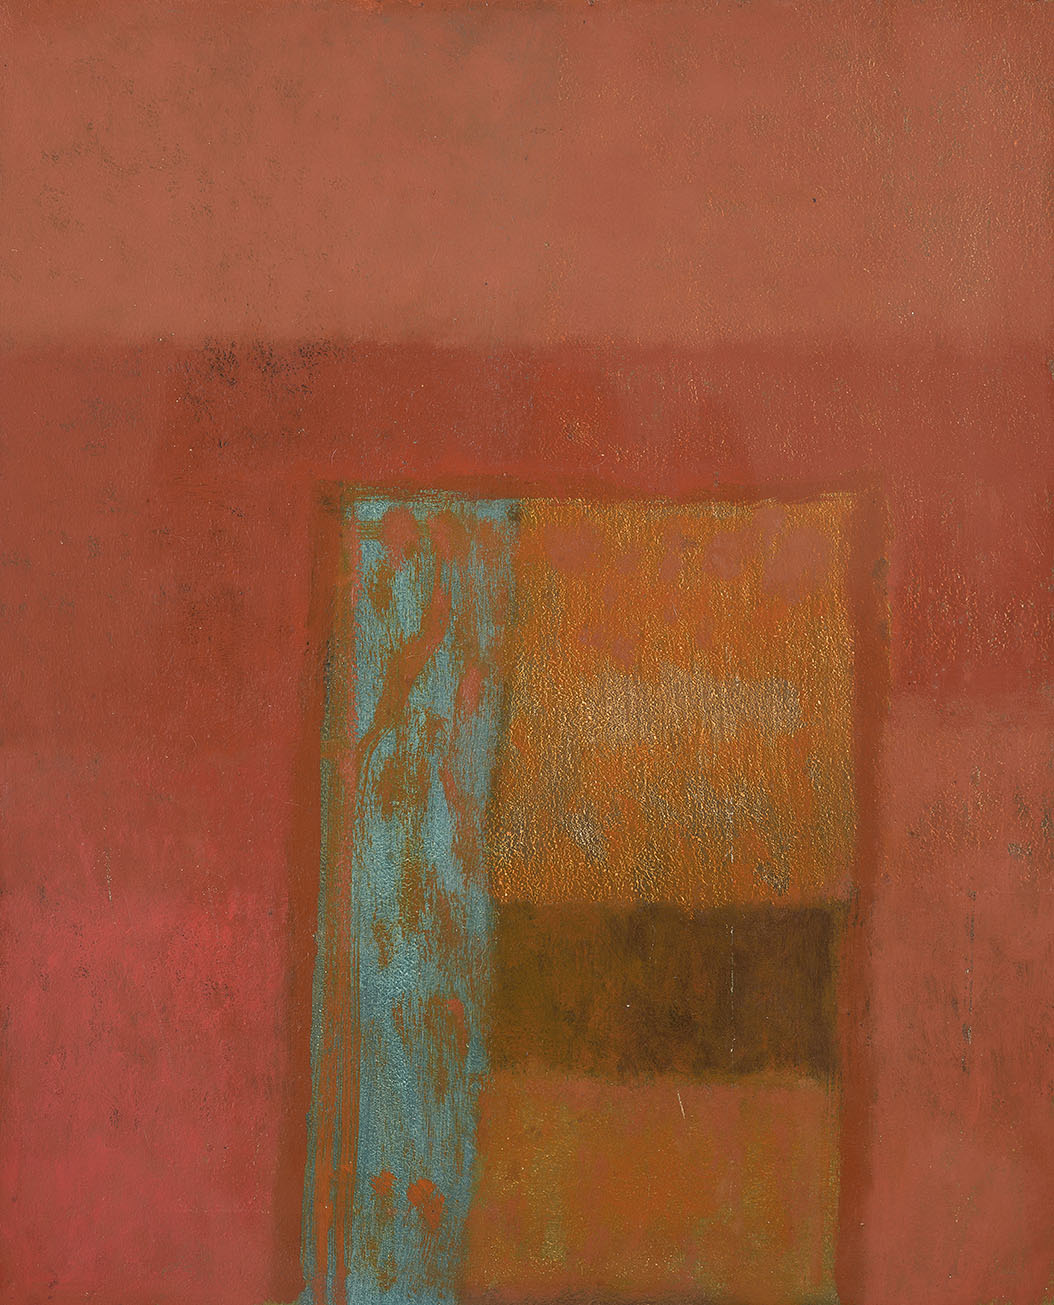 Bruce Killeen (1926-2014)    Viridian and Rust,  c.1977, Oil on board, 21 x 17 in  [CAS 30] Acquired in 1977